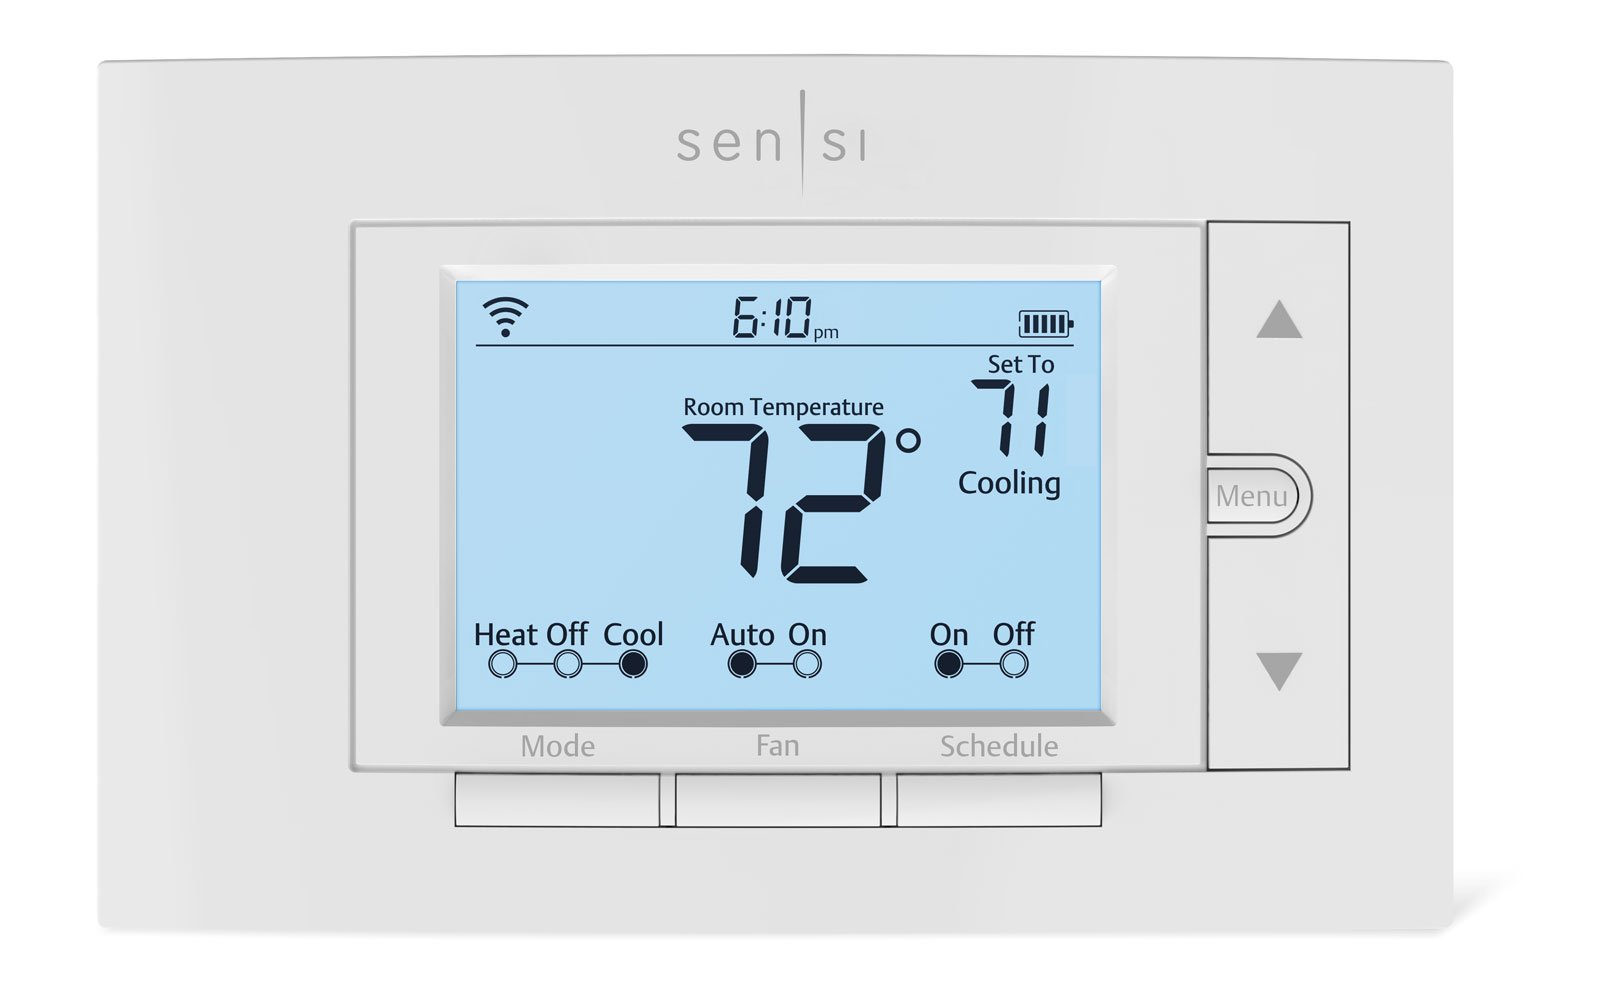 Emerson Sensi Wi-Fi Thermostat for Smart Home, 1F87U-42WF, Pro Version by Emerson Thermostats